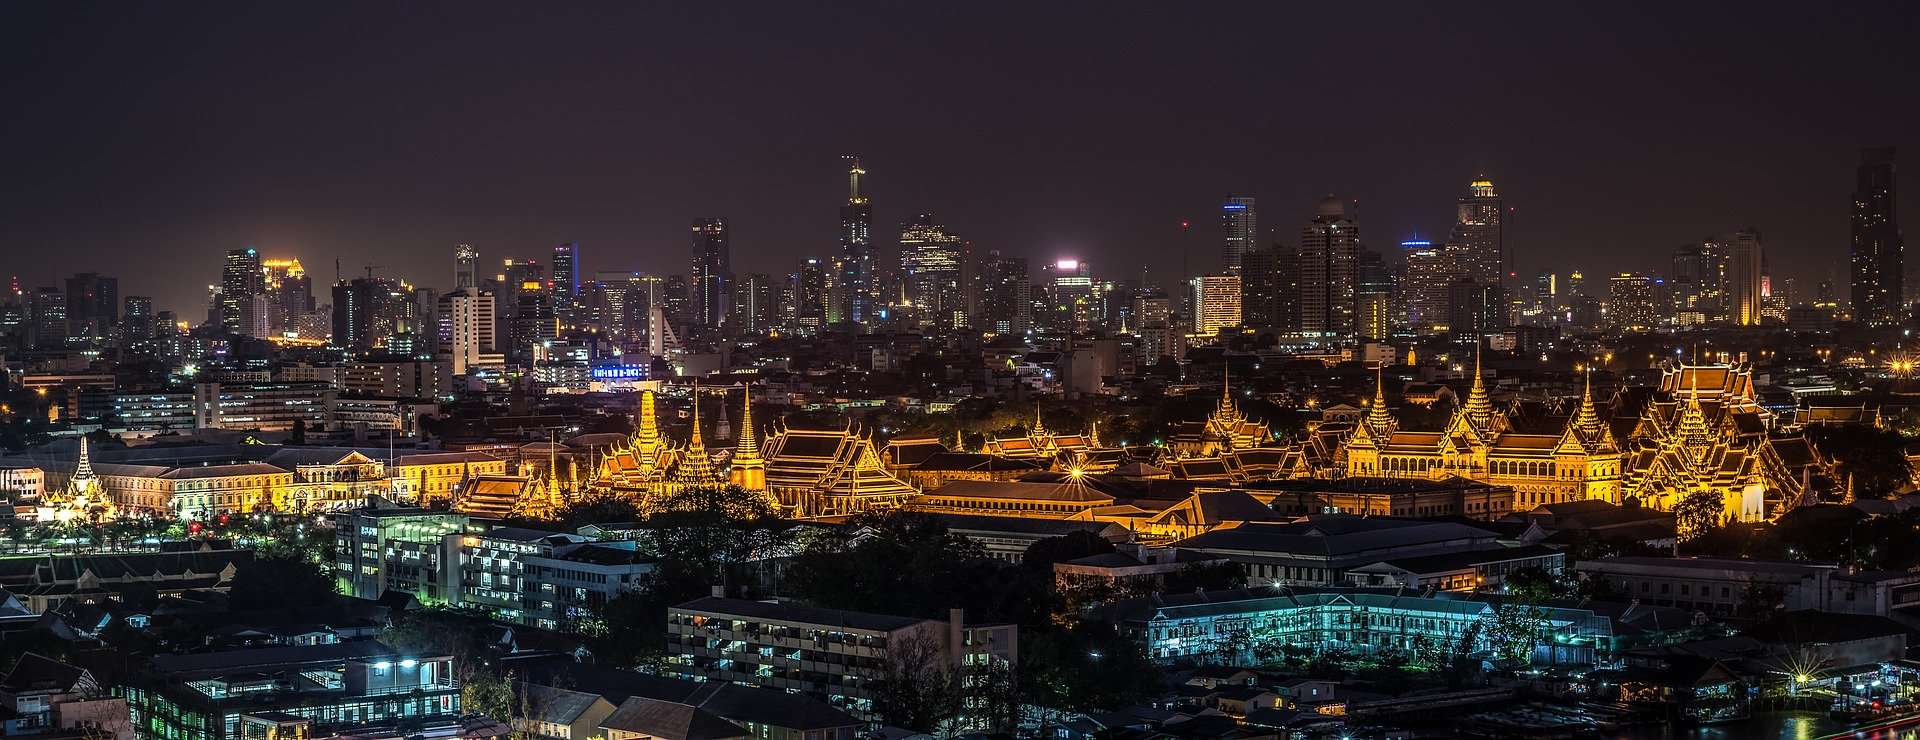 The Grand Palace amidst the Bangkok skyline at night.